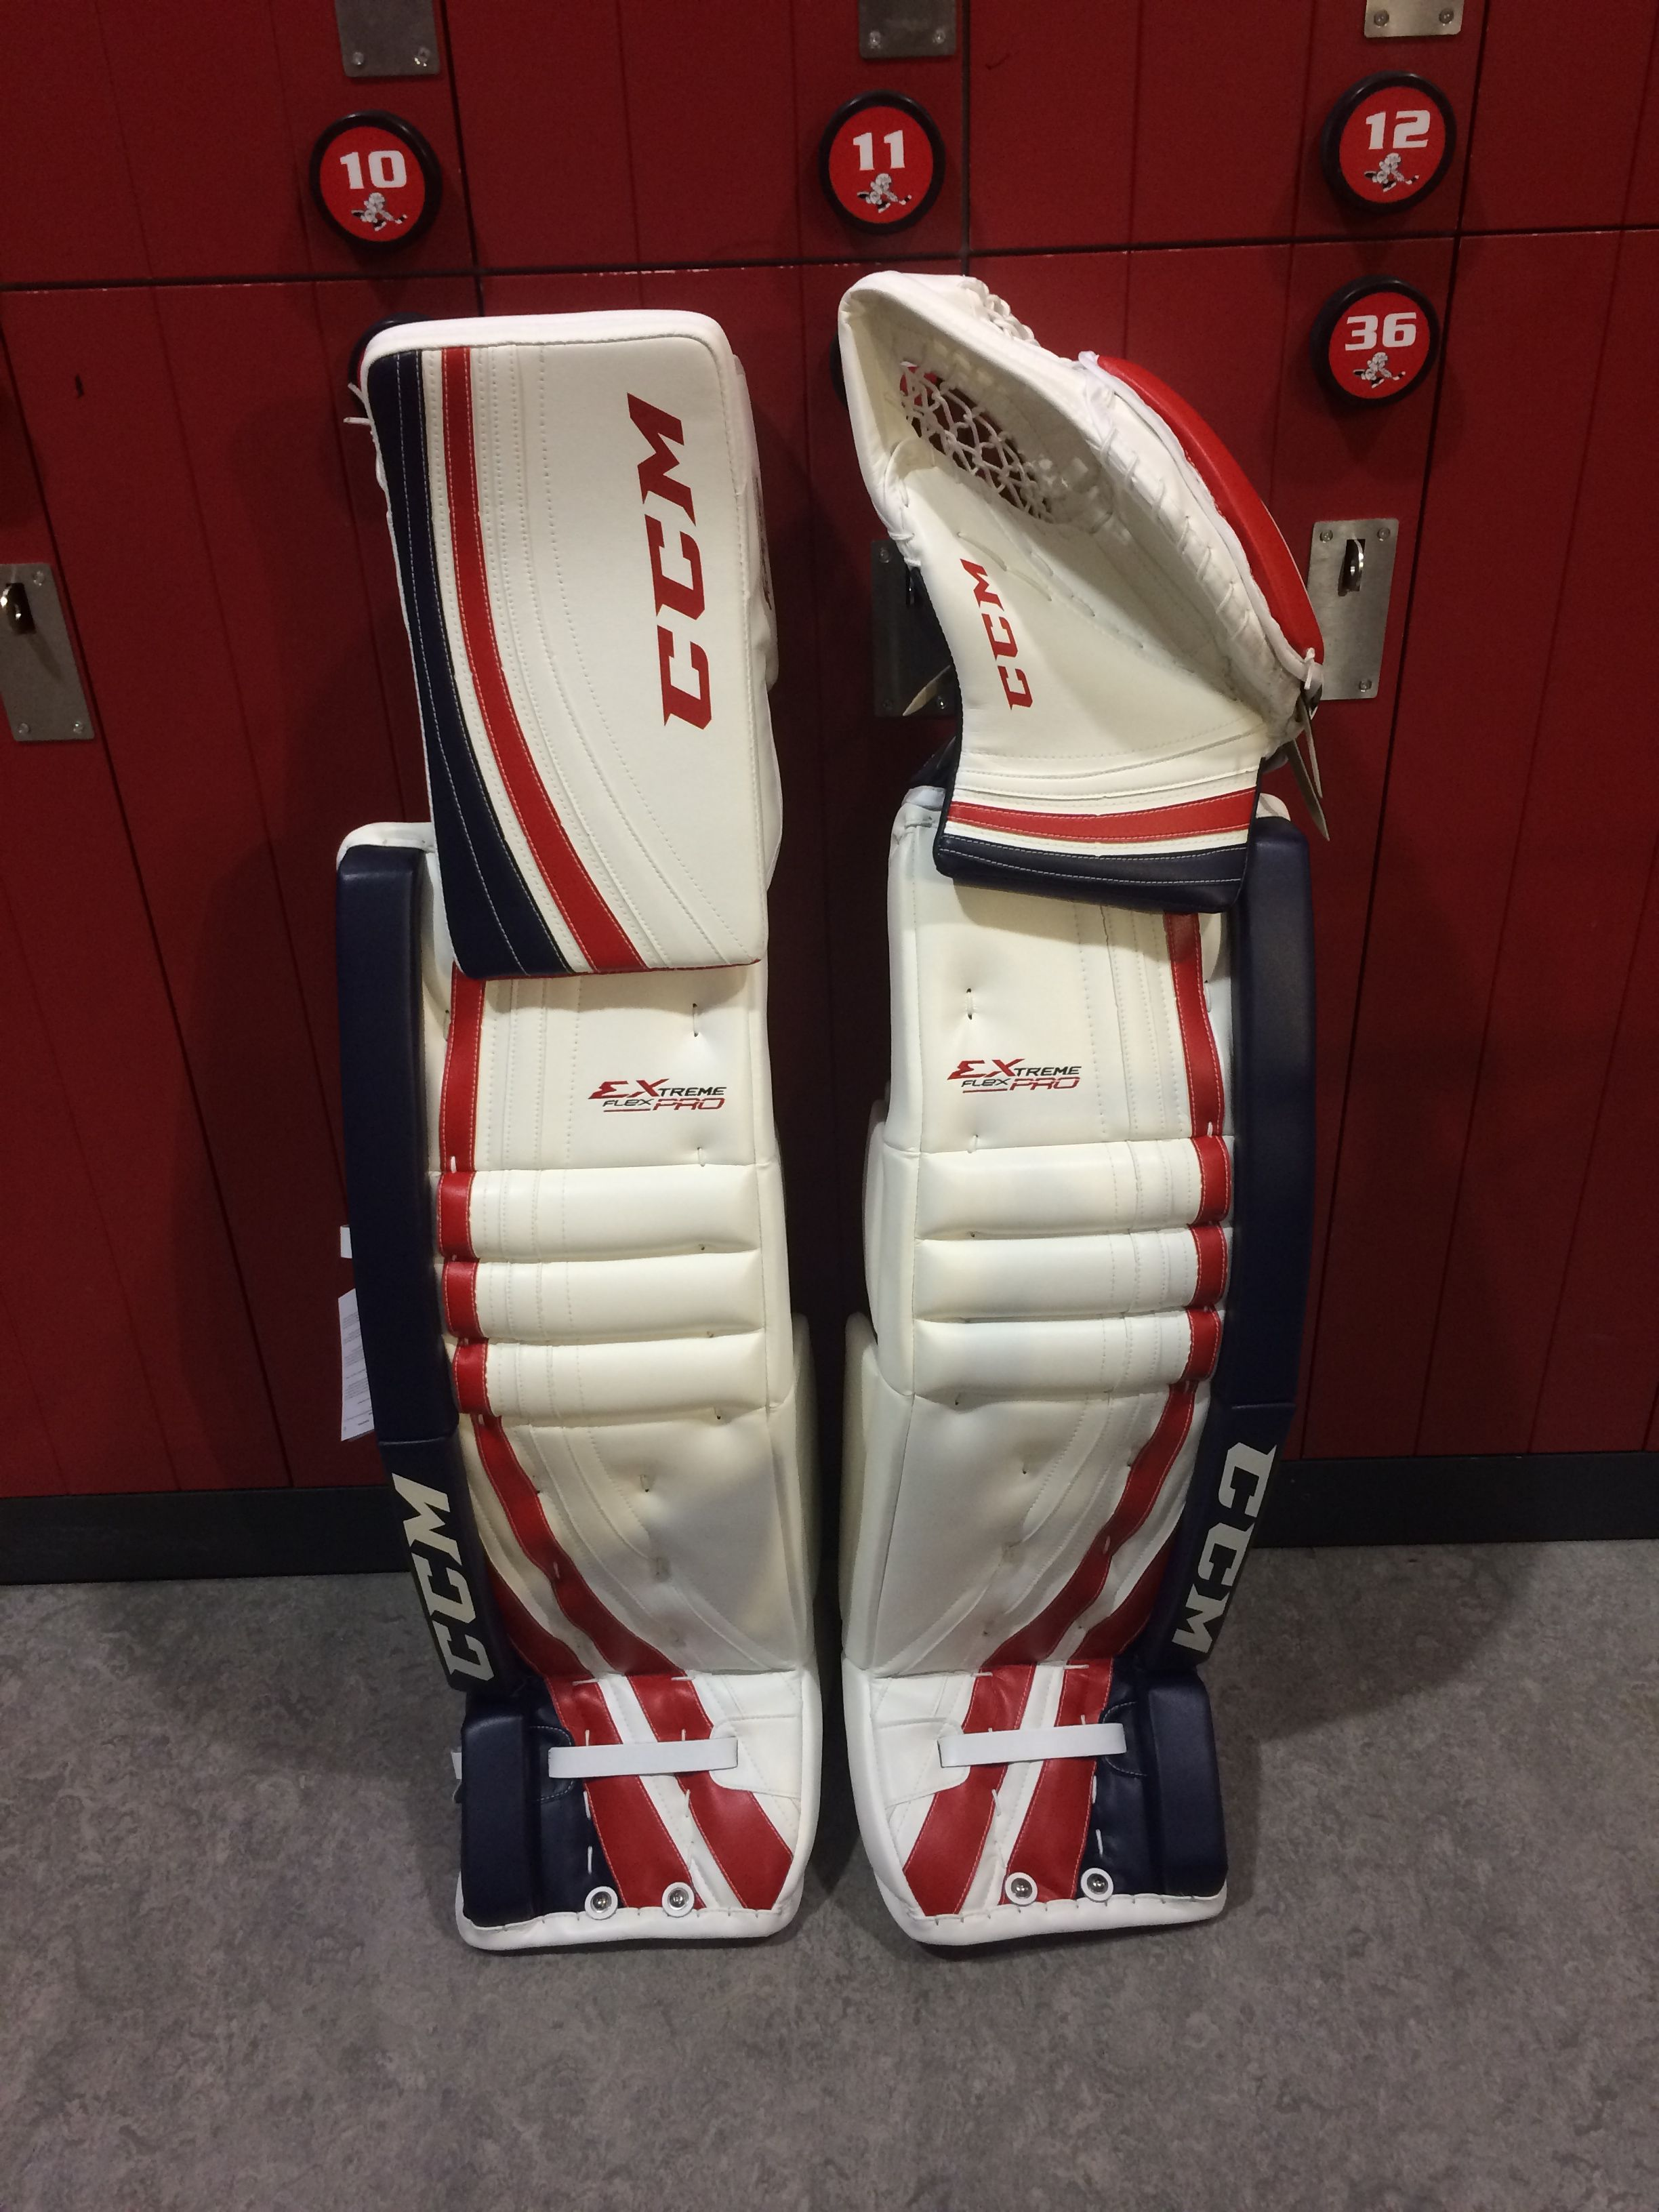 c1f58a31ab9 CCM Extreme Flex Pro custom goalie pads and gloves made for a customer. Do  you like the color choices